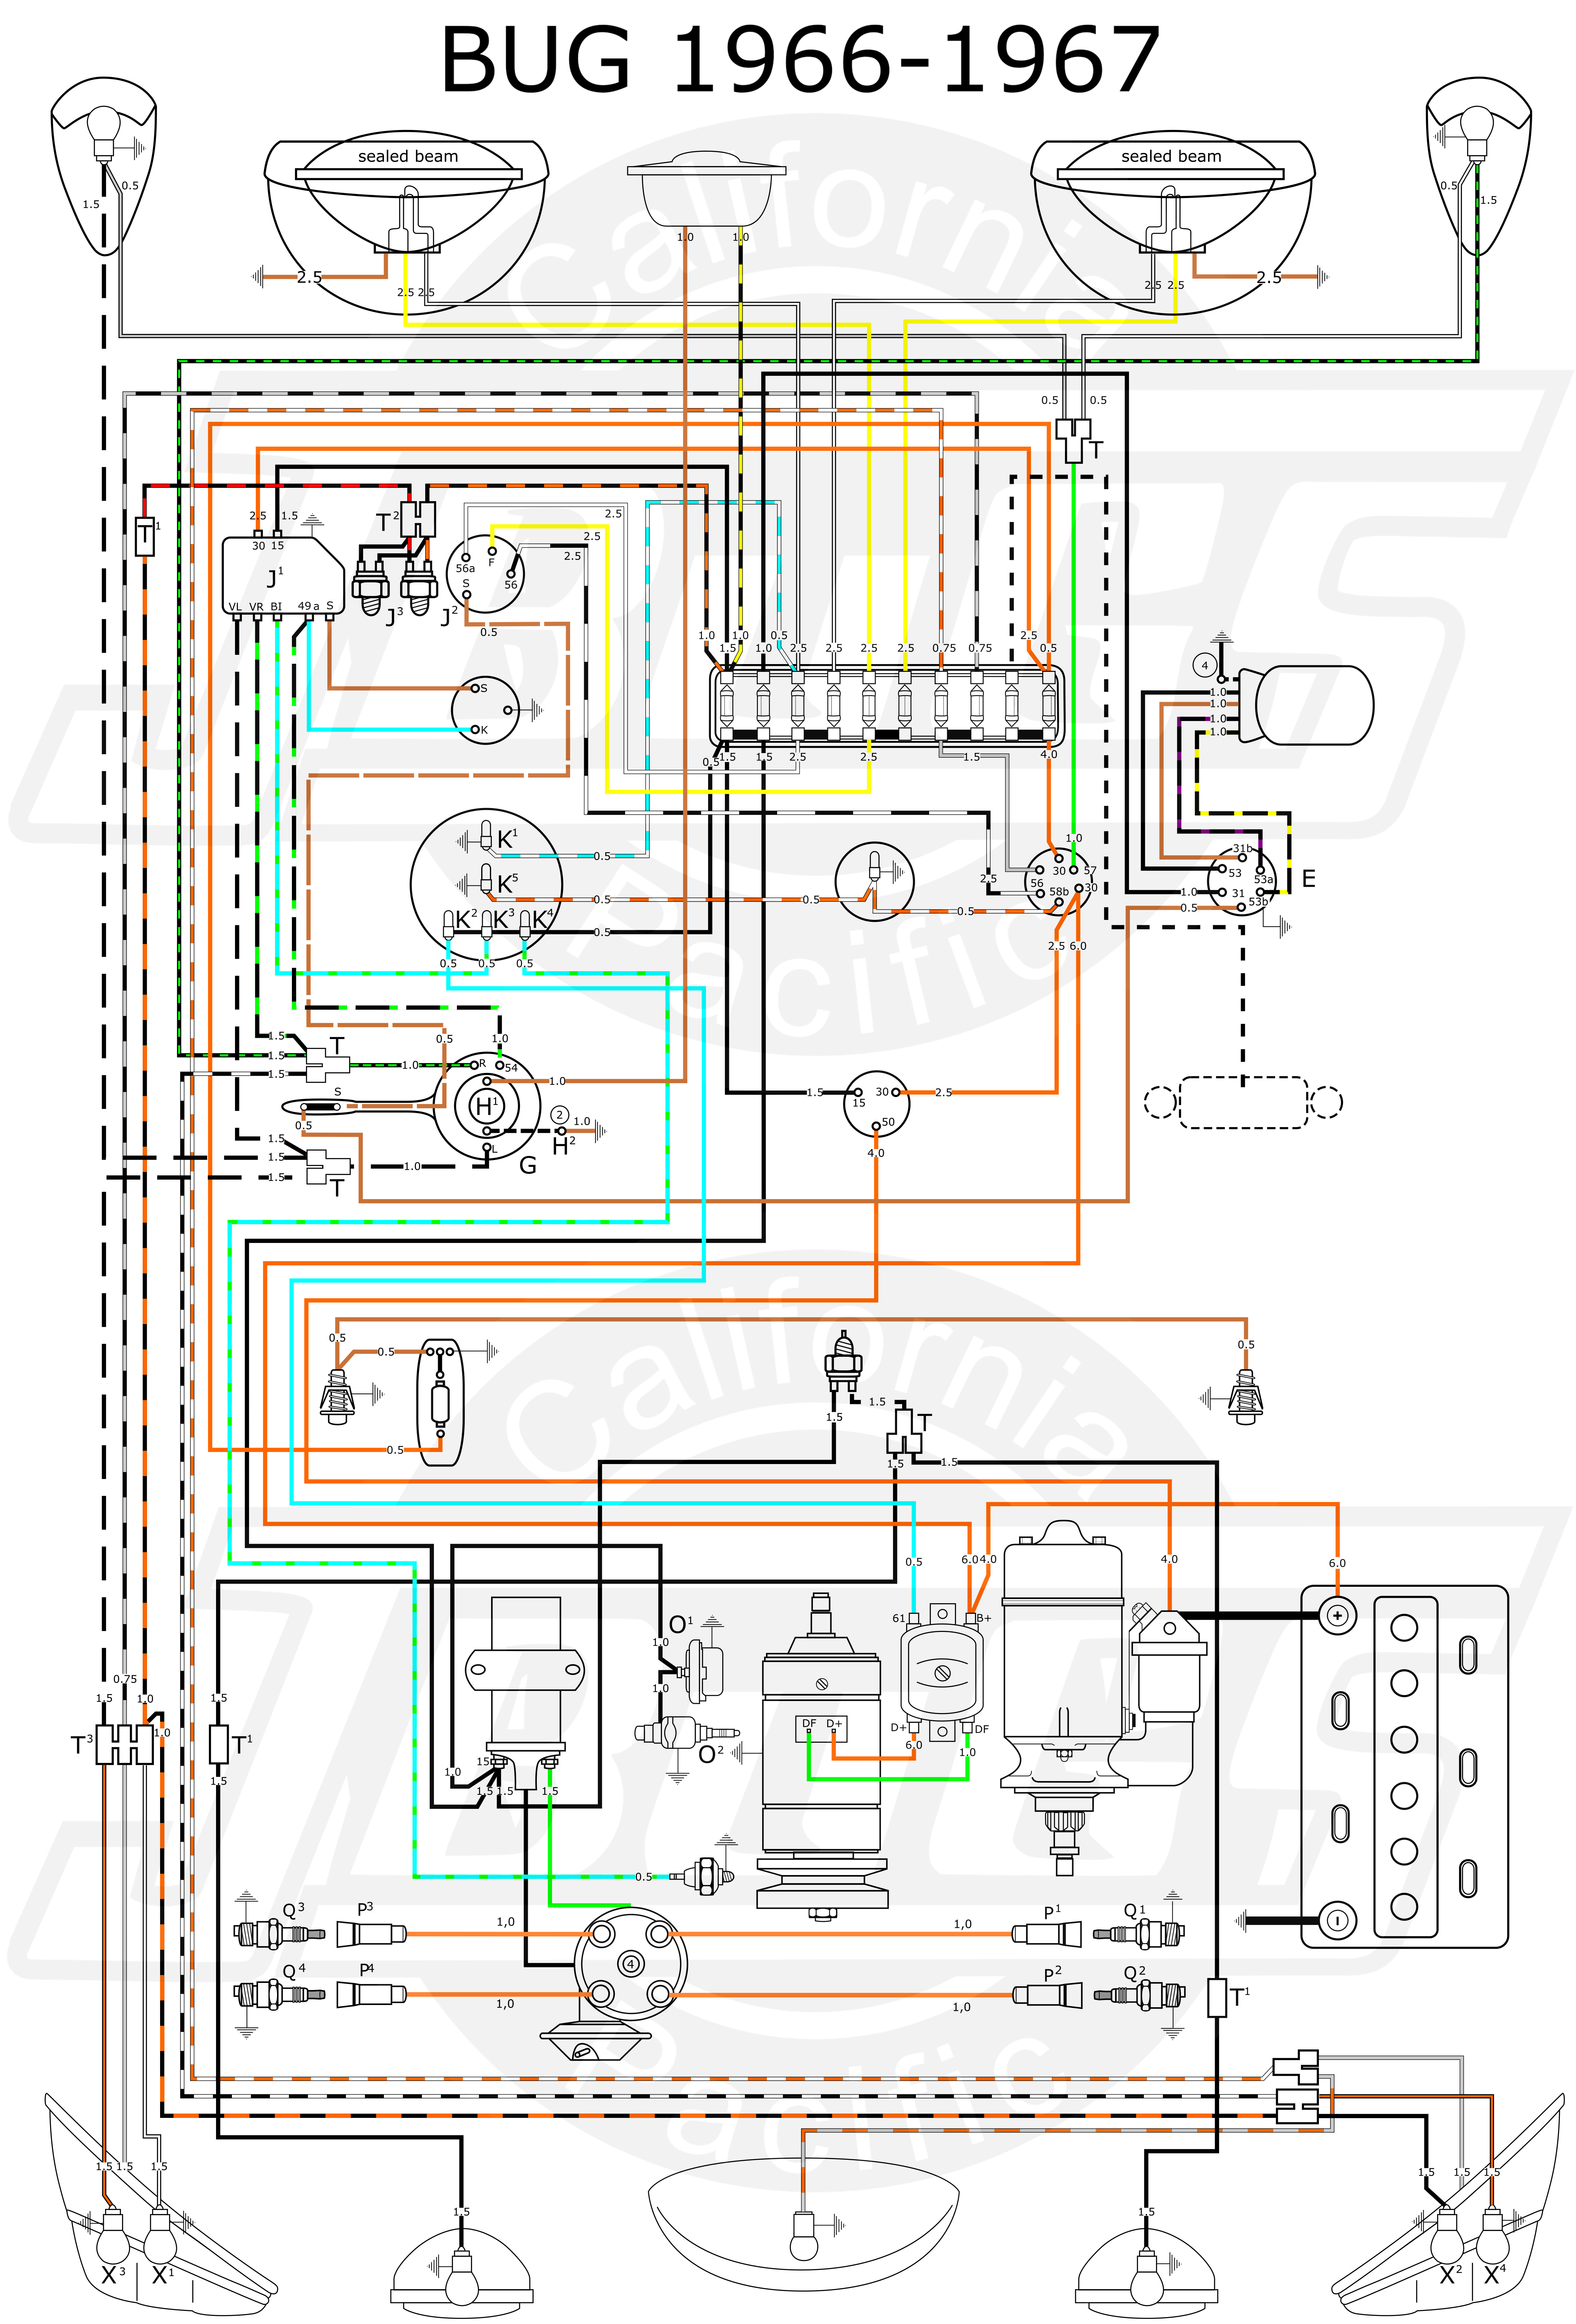 Vw tech article 1966 67 wiring diagram publicscrutiny